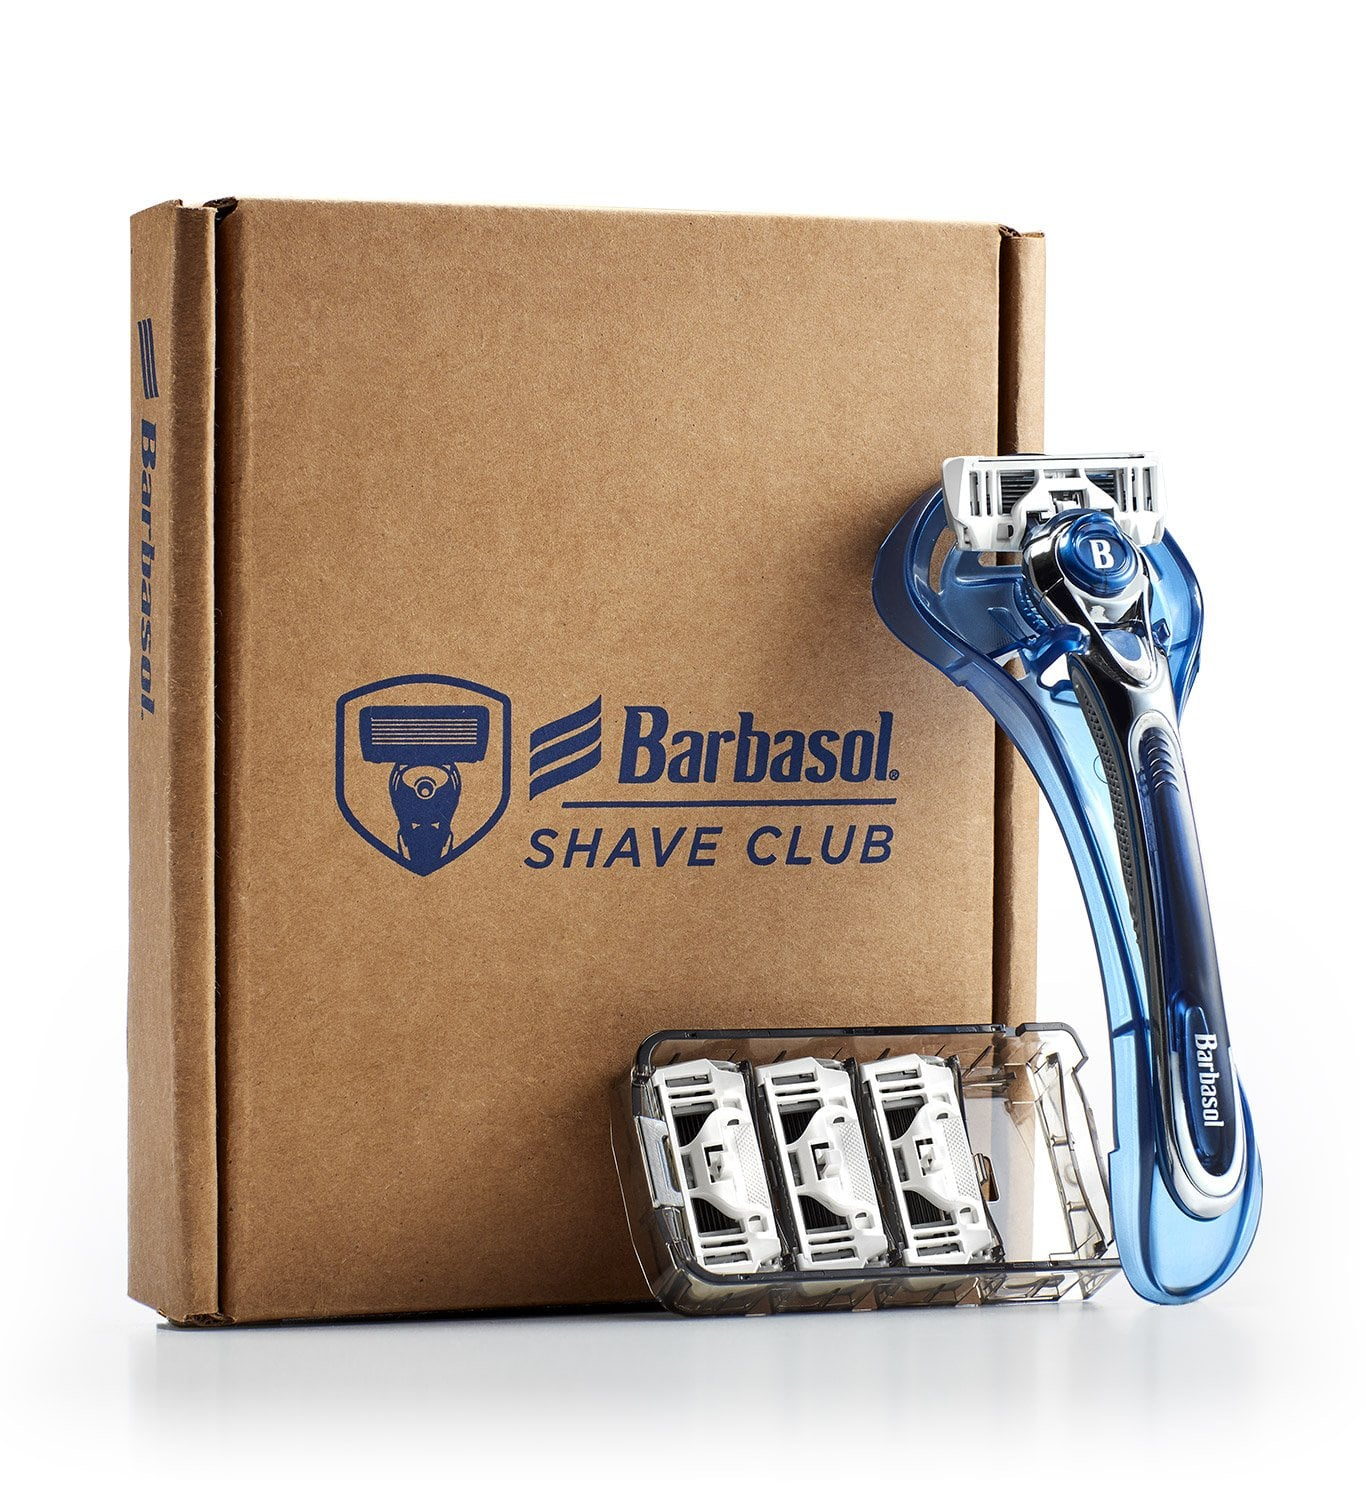 Barbasol: $4 Off Your First Month's Razor Subscription - $5.99